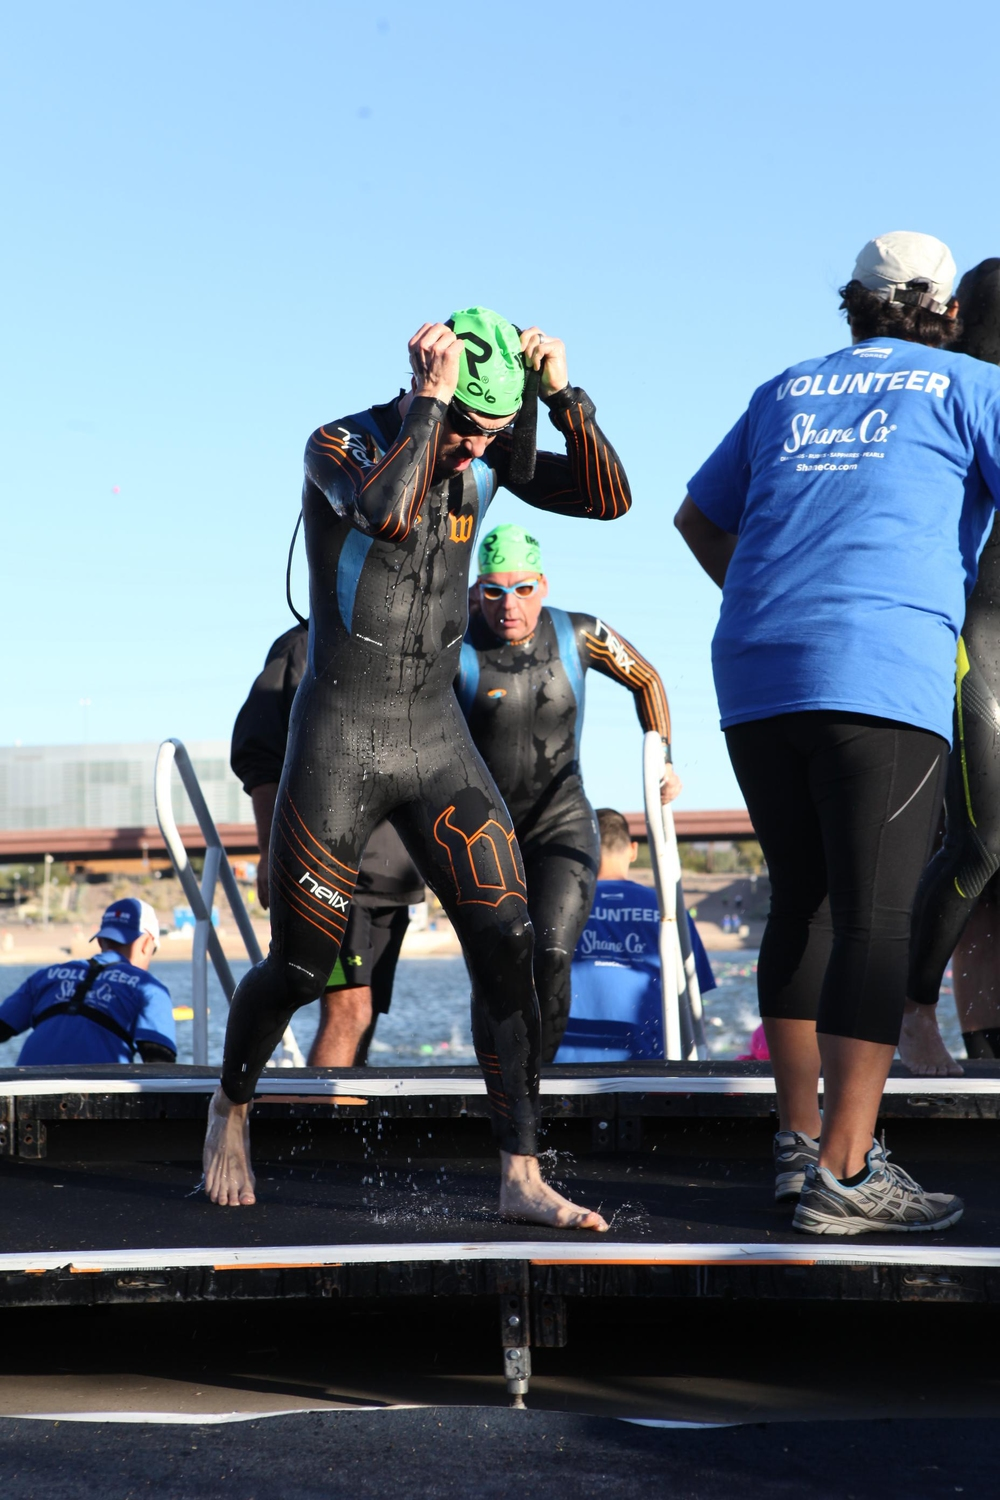 Absolutely love my custom BlueSeventy Helix wetsuit. It fits super snugly and doesn't restrain my shoulders.